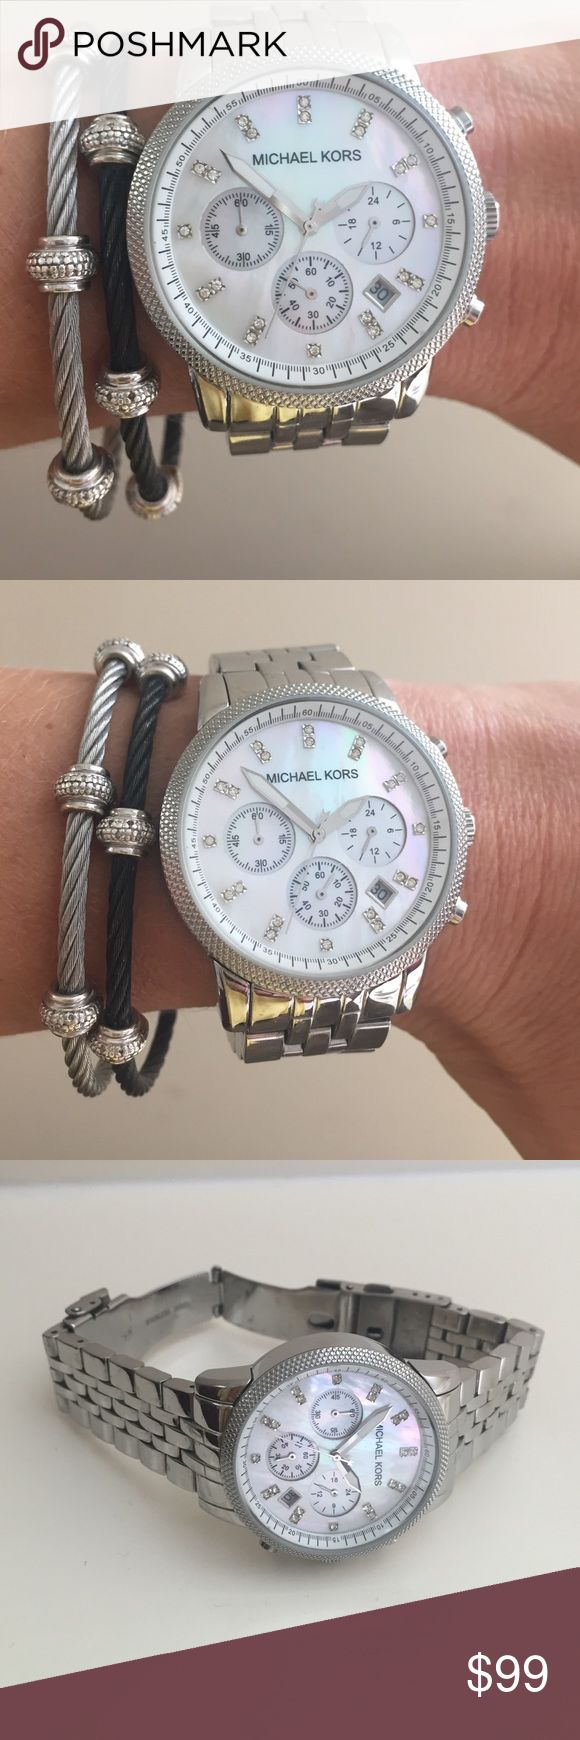 Michael Kors stainless steel ladies watch Michael Kors stainless steel glitz digit watch with mother of pearl face.  (Have extra links) Michael Kors Accessories Watches